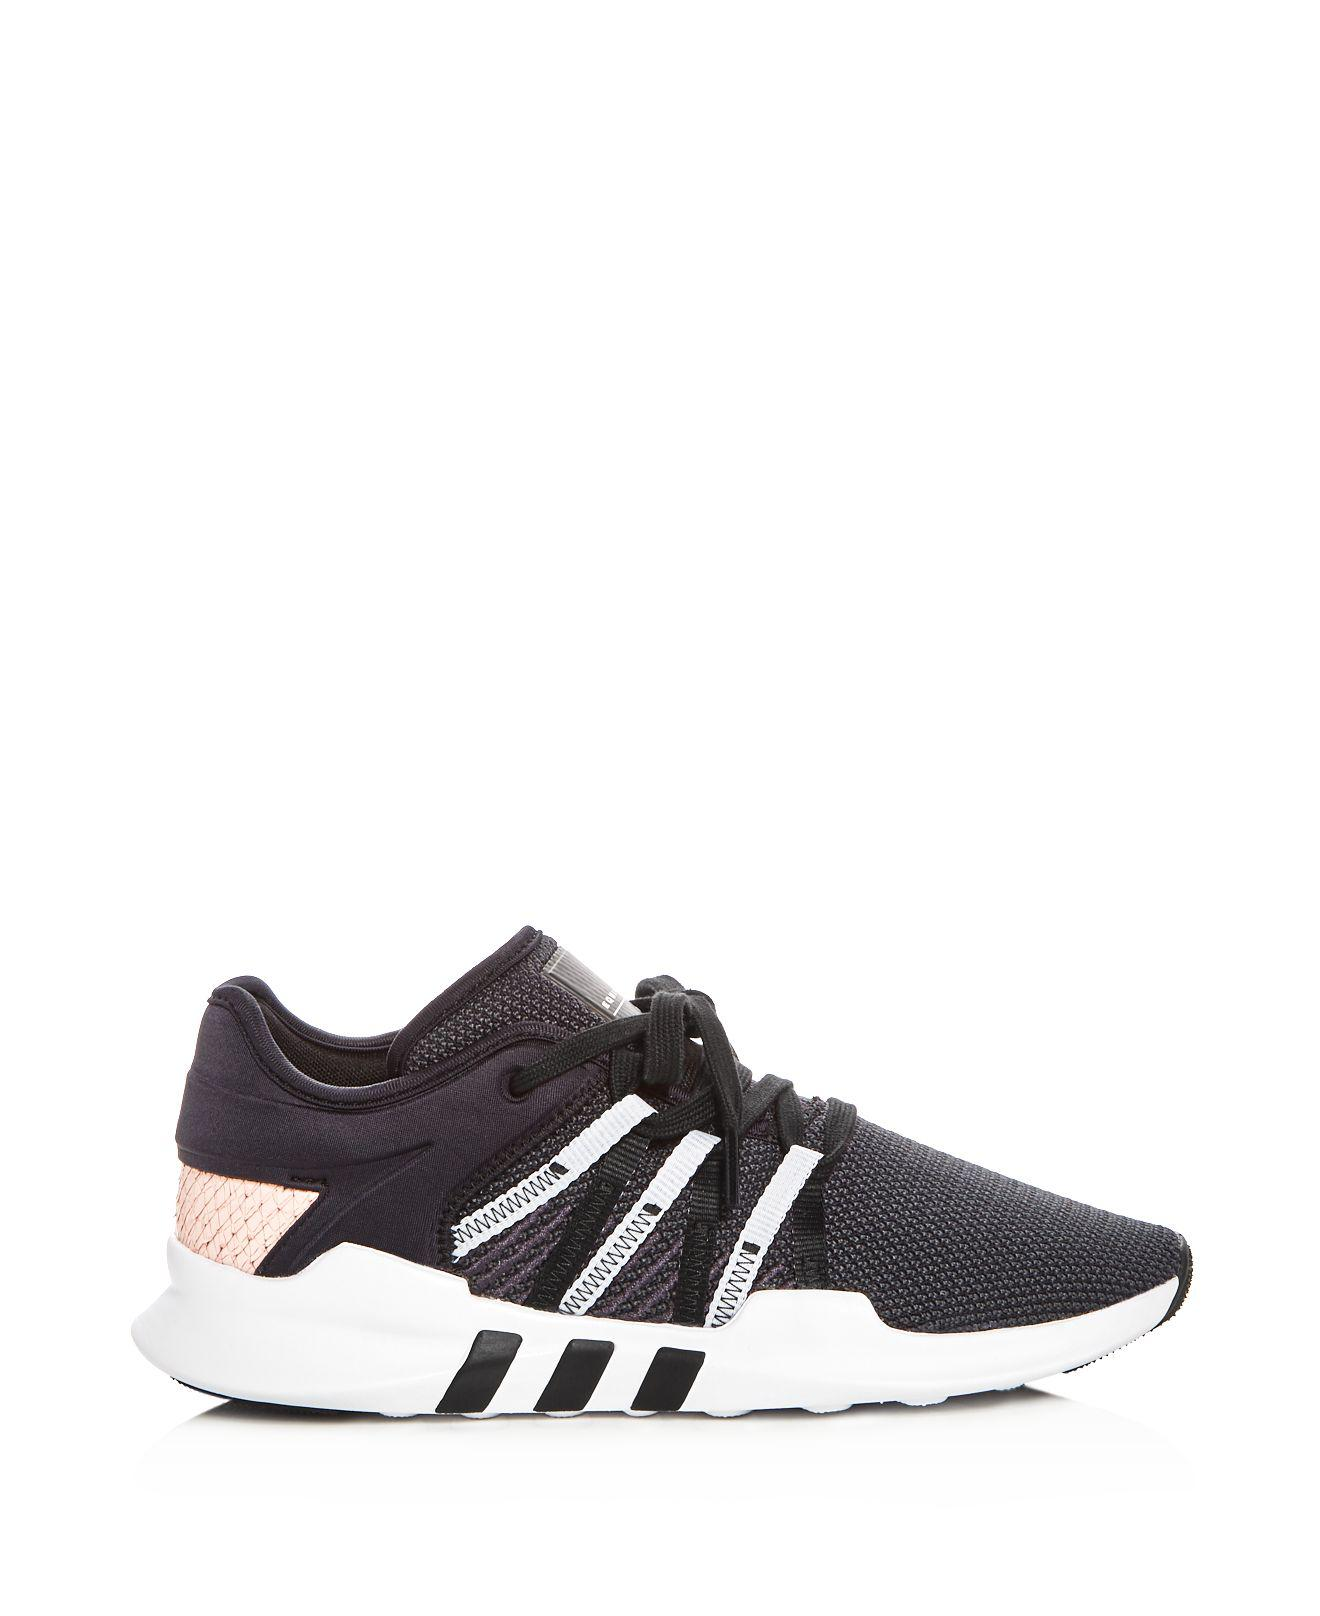 adidas Women's Equipment Racing Primeknit Lace Up Sneakers jfnGWY2m